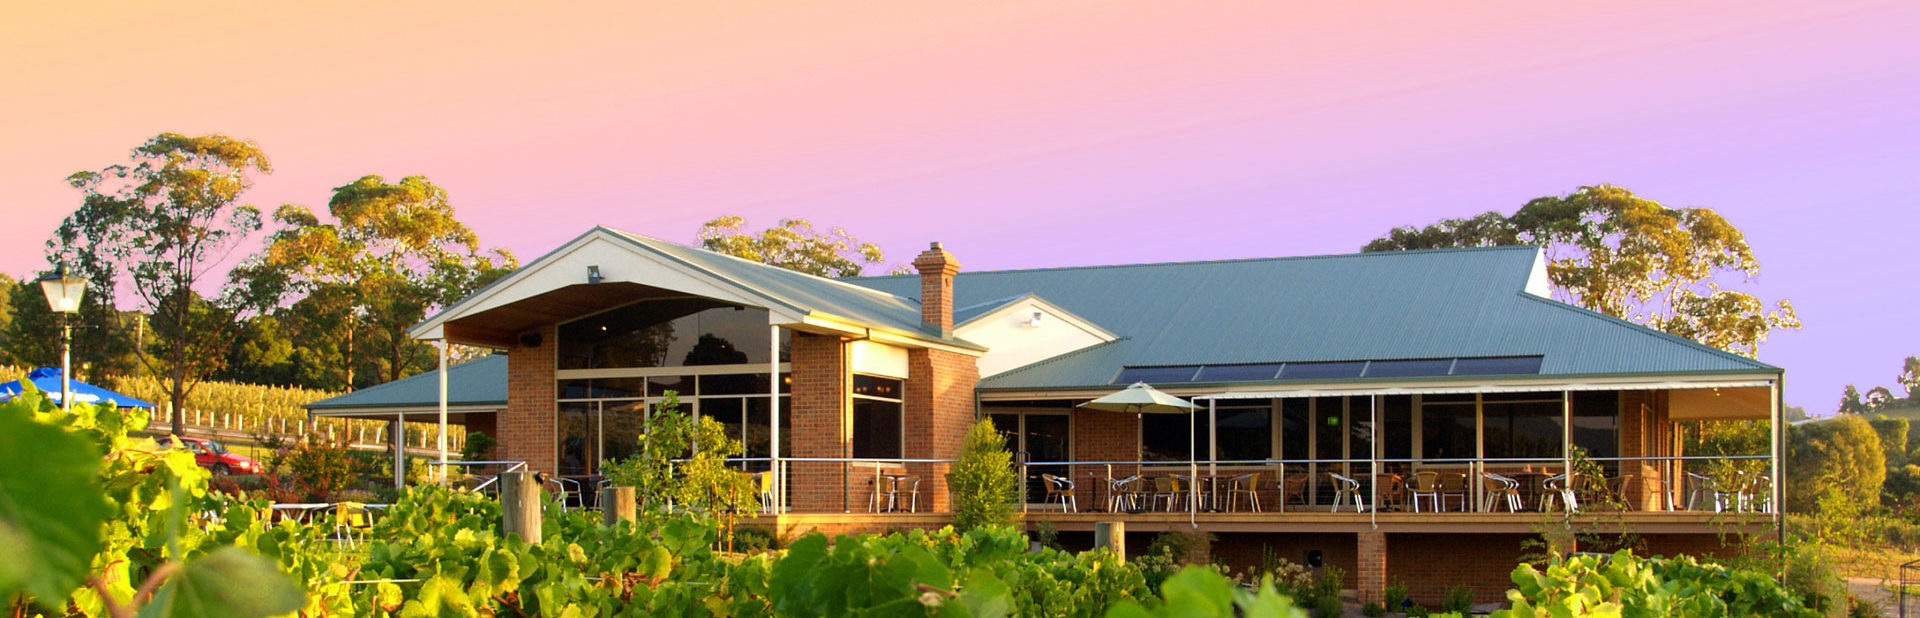 Wild Cattle Creek Estate, Yarra Valley, Melbourne. Accommodation, Restaurant, Vinyard, Weddings, Functions